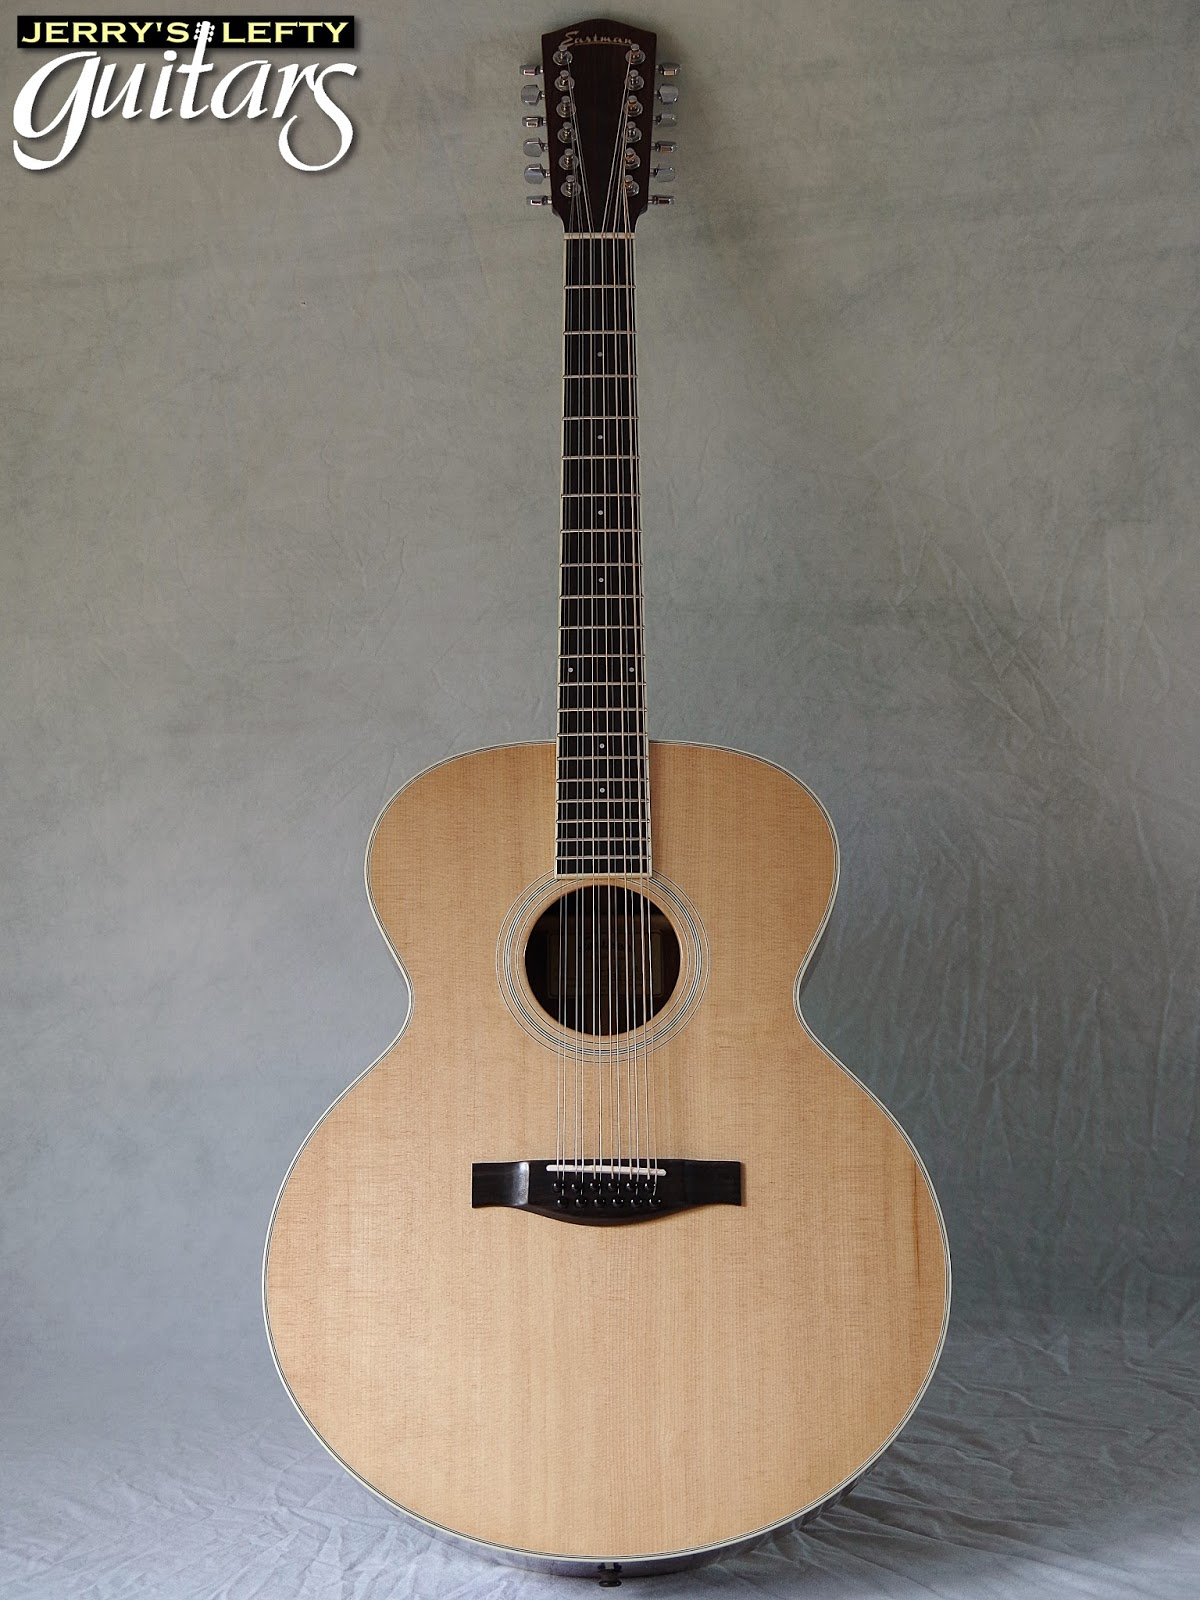 jerry 39 s lefty guitars newest guitar arrivals updated weekly eastman ac330 12 string left. Black Bedroom Furniture Sets. Home Design Ideas